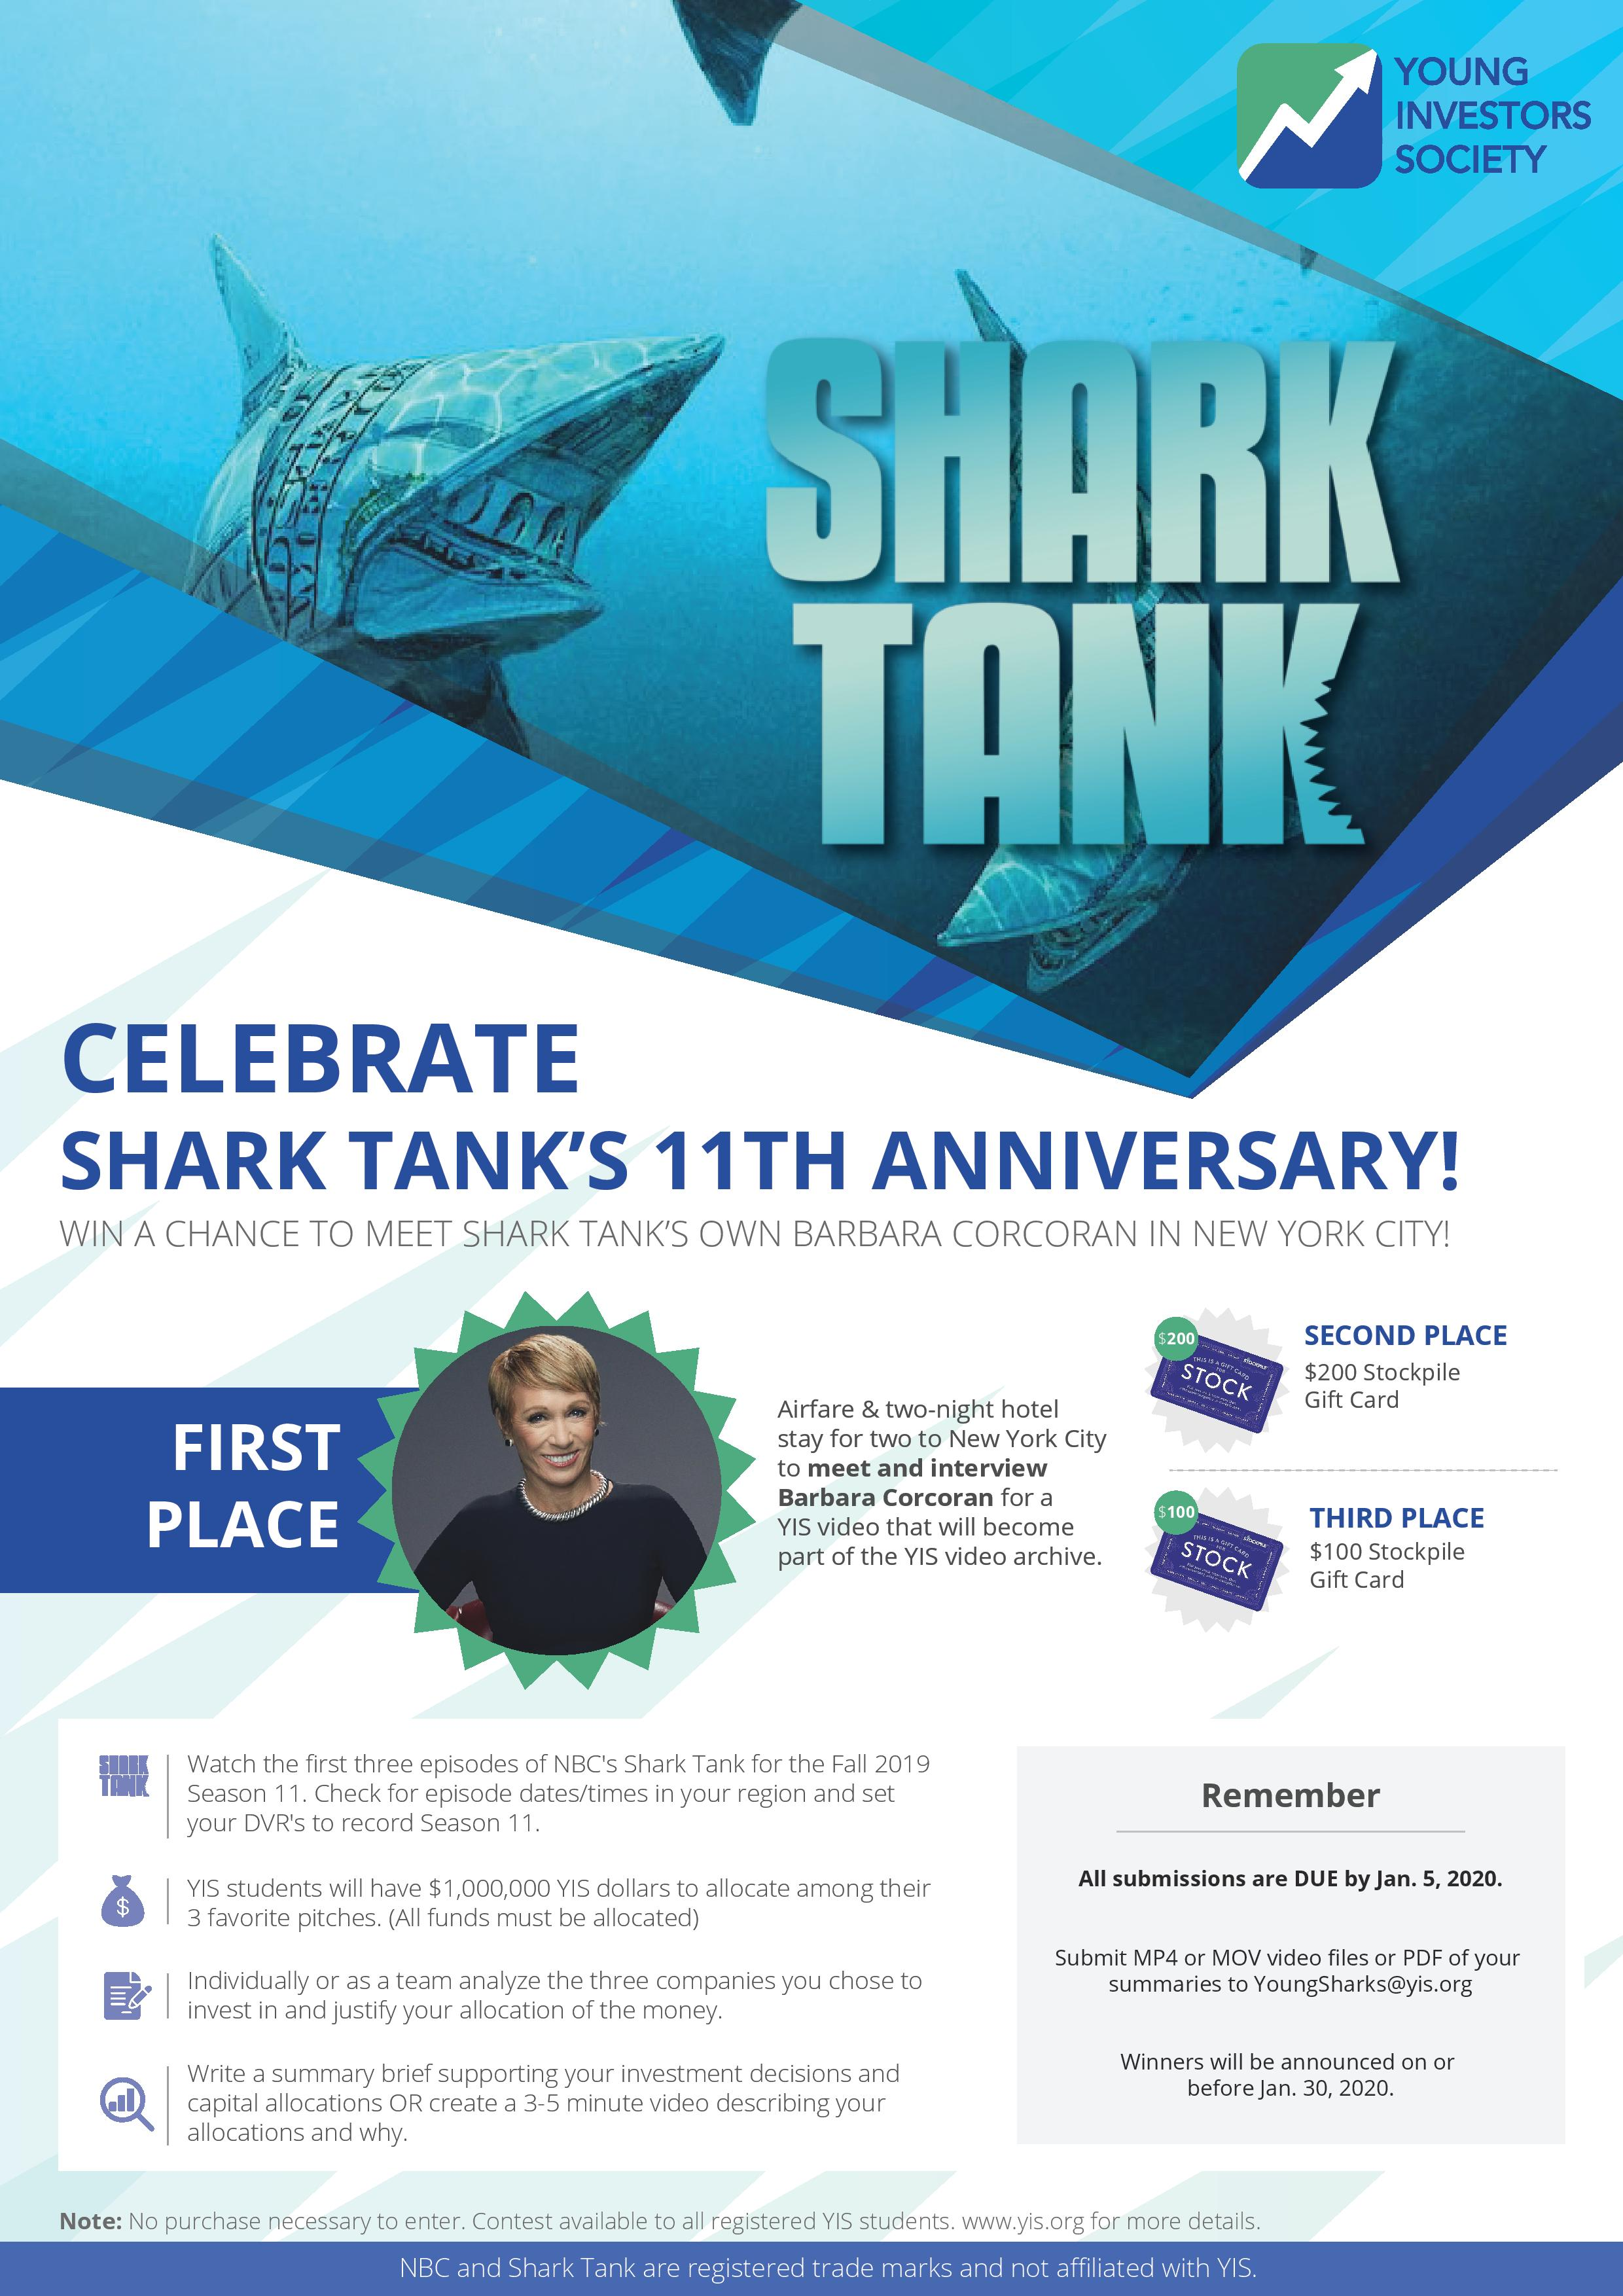 Celebrate Shark Tank's 11th Anniversary!